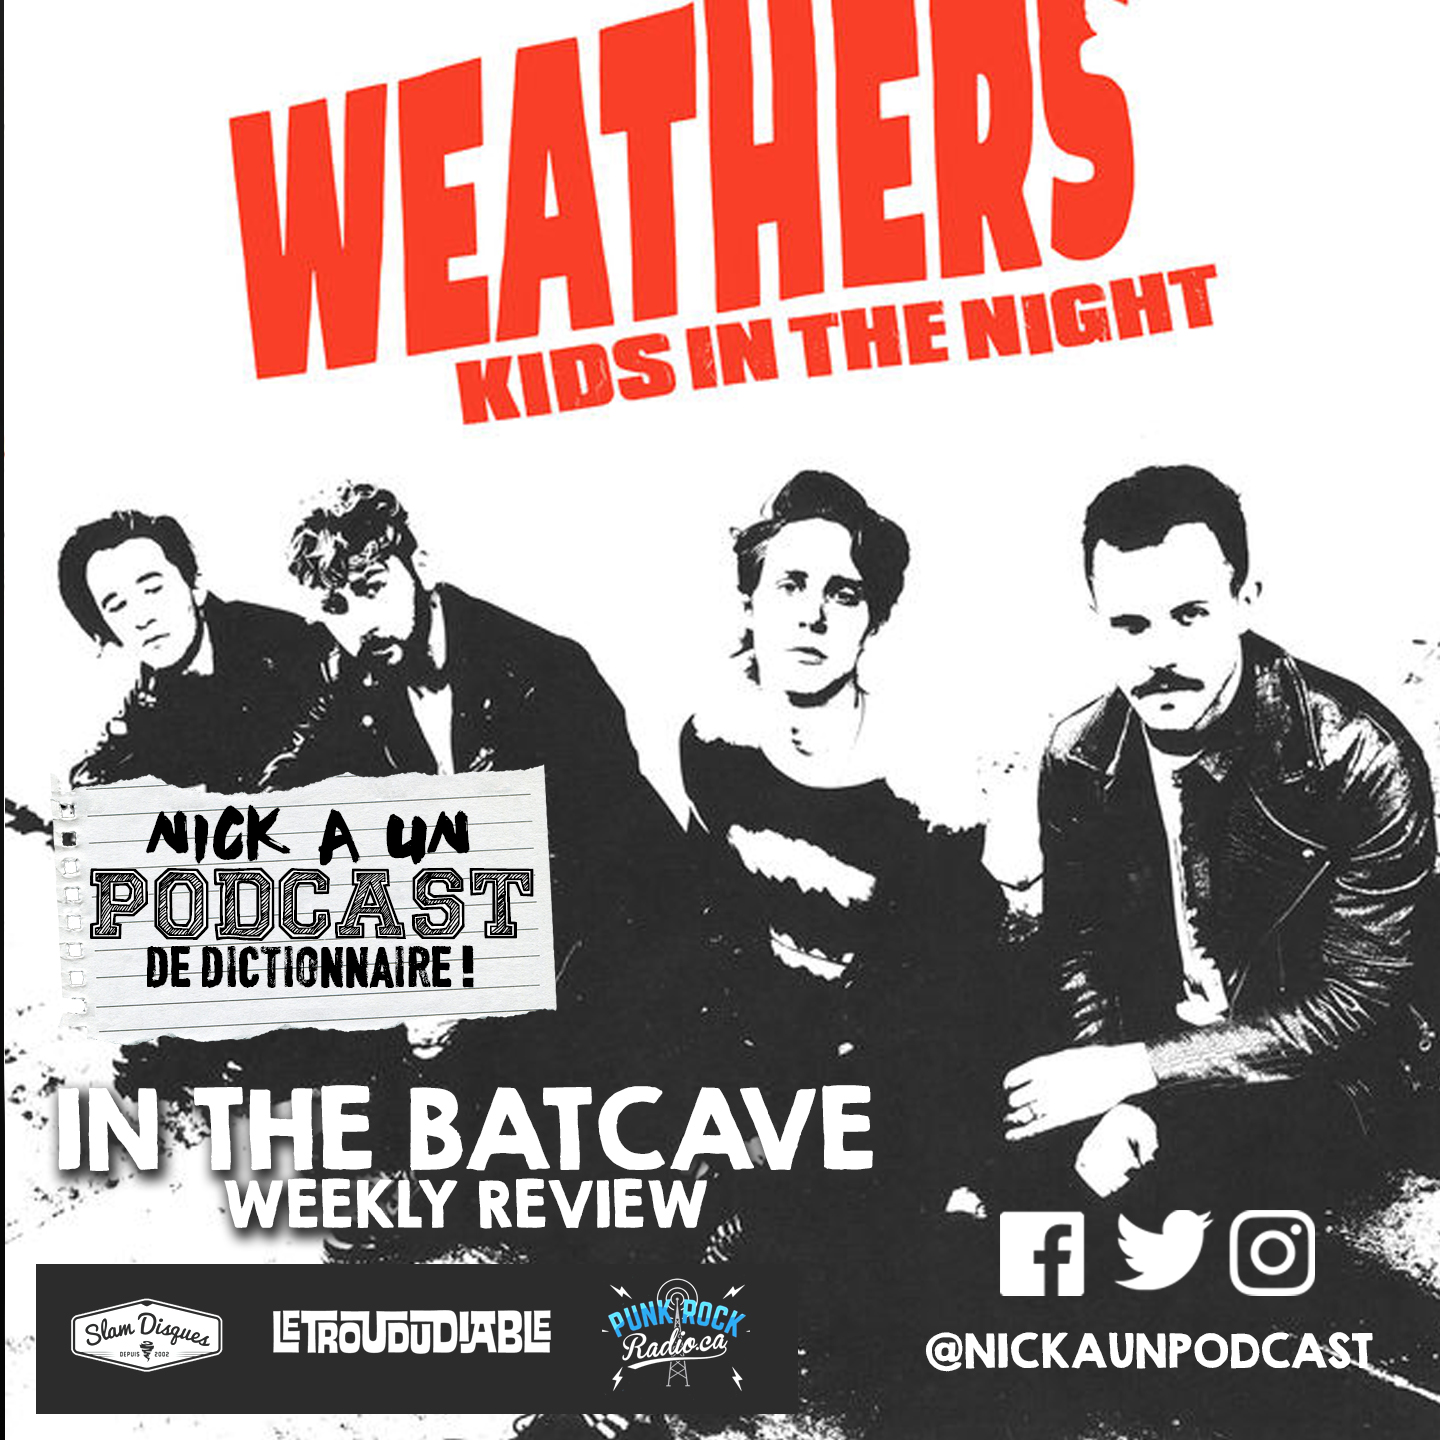 """40 - WEATHERS """"KIDS IN THE NIGHT"""" ALBUM REVIEW"""